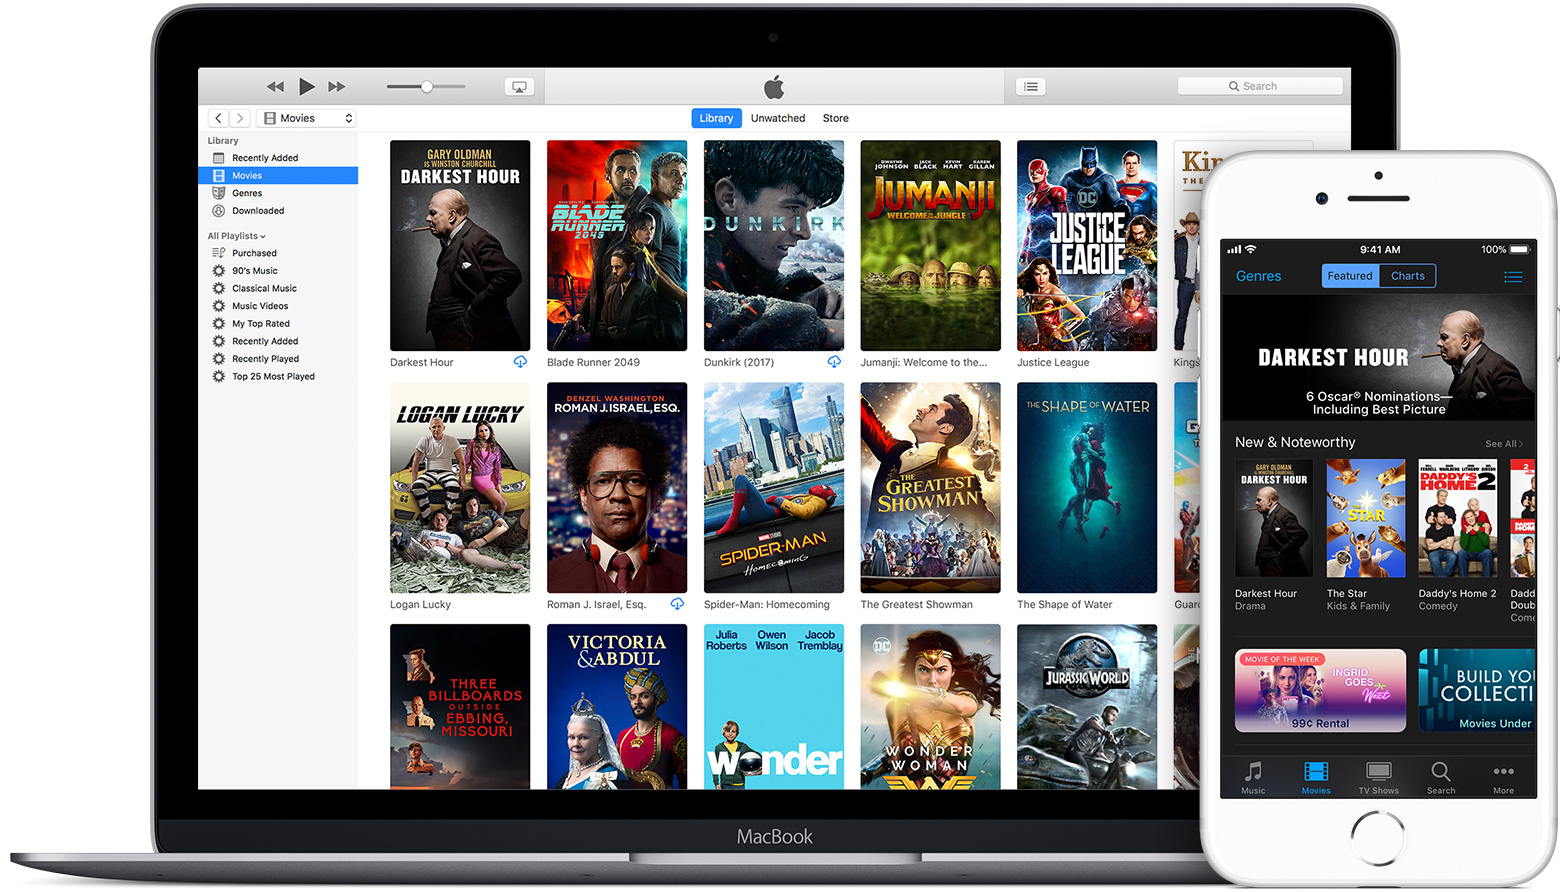 apple tv films kijken gratis